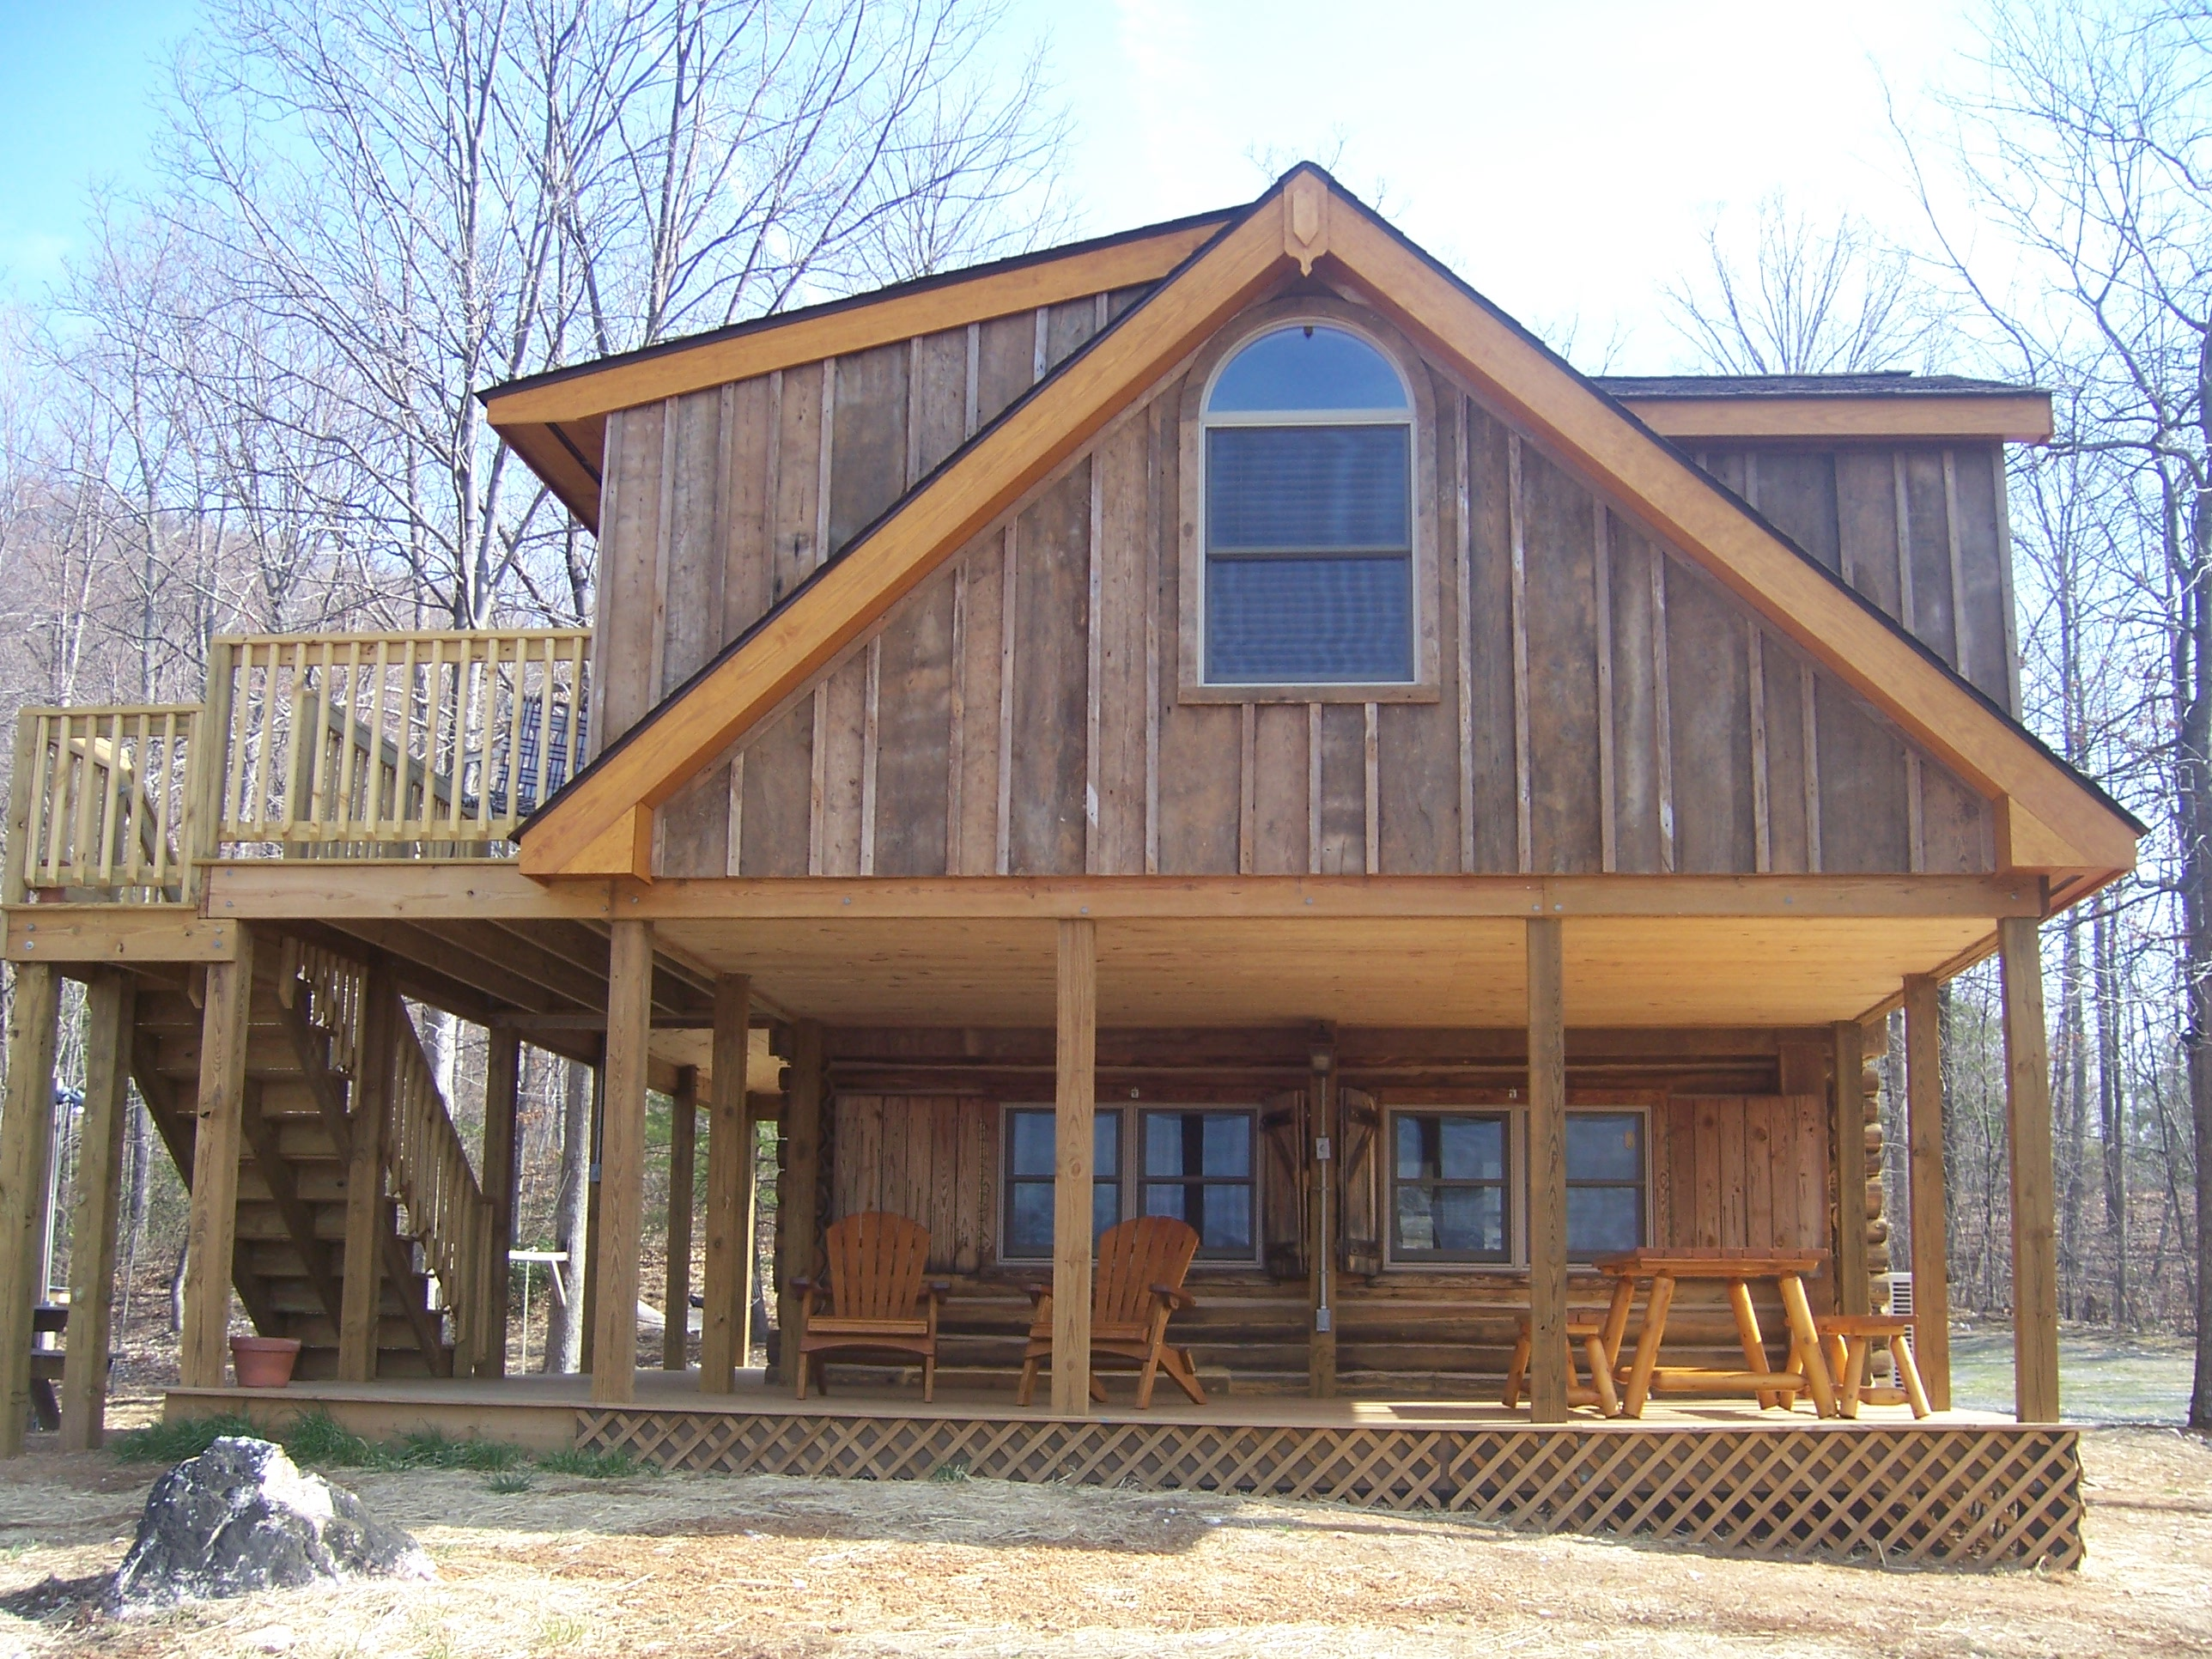 cabin blue rental cabins pro at cabinrentals sunrise rentals ridge mountains ga